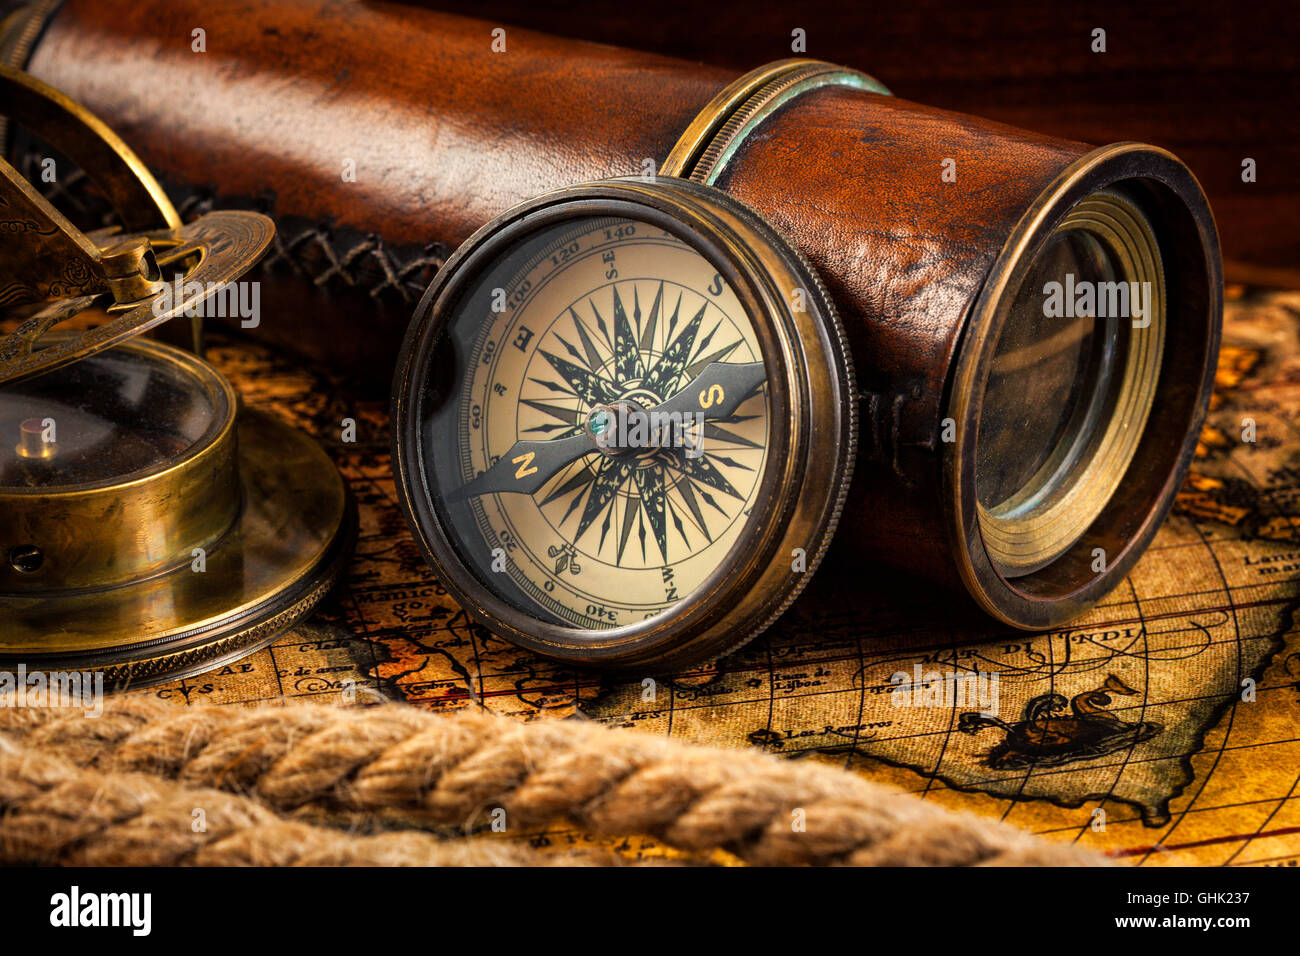 Old vintage compass and navigation instruments on ancient map - Stock Image